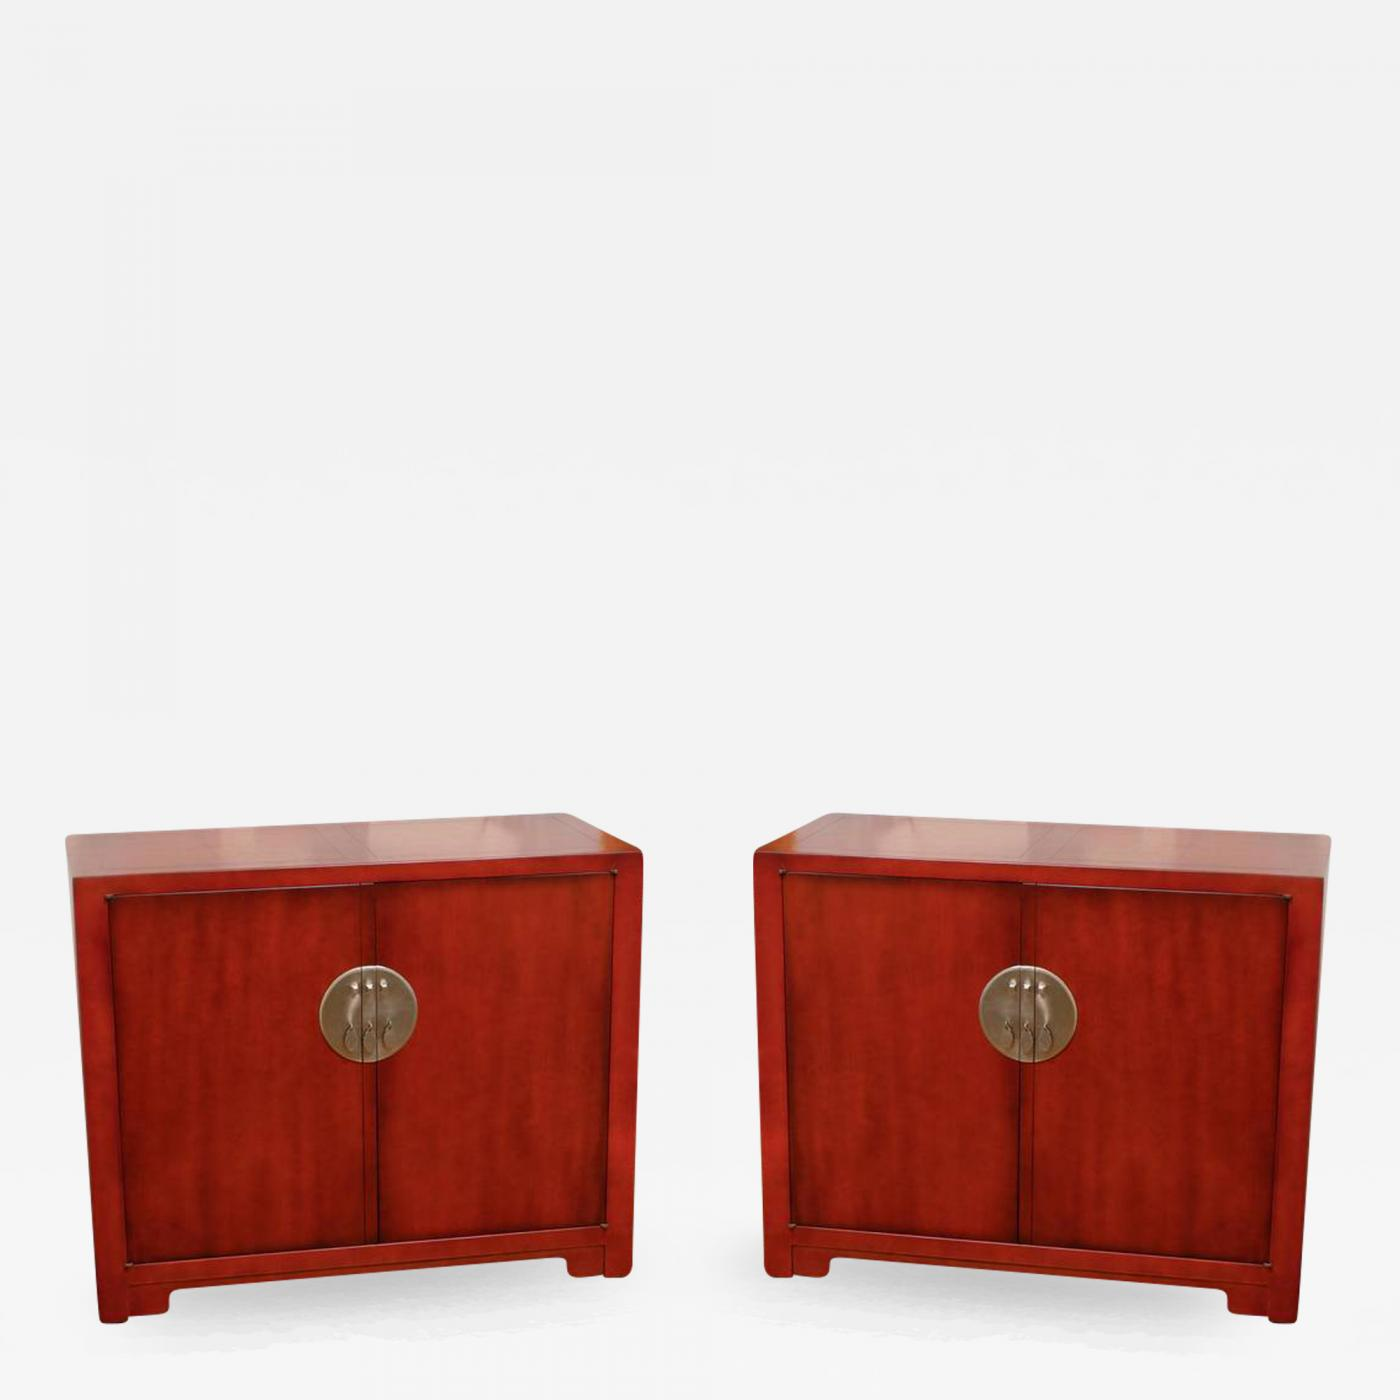 Baker Furniture Co Stunning Restored Pair Of Vintage Cabinets By Baker In Chinese  Red Lacquer